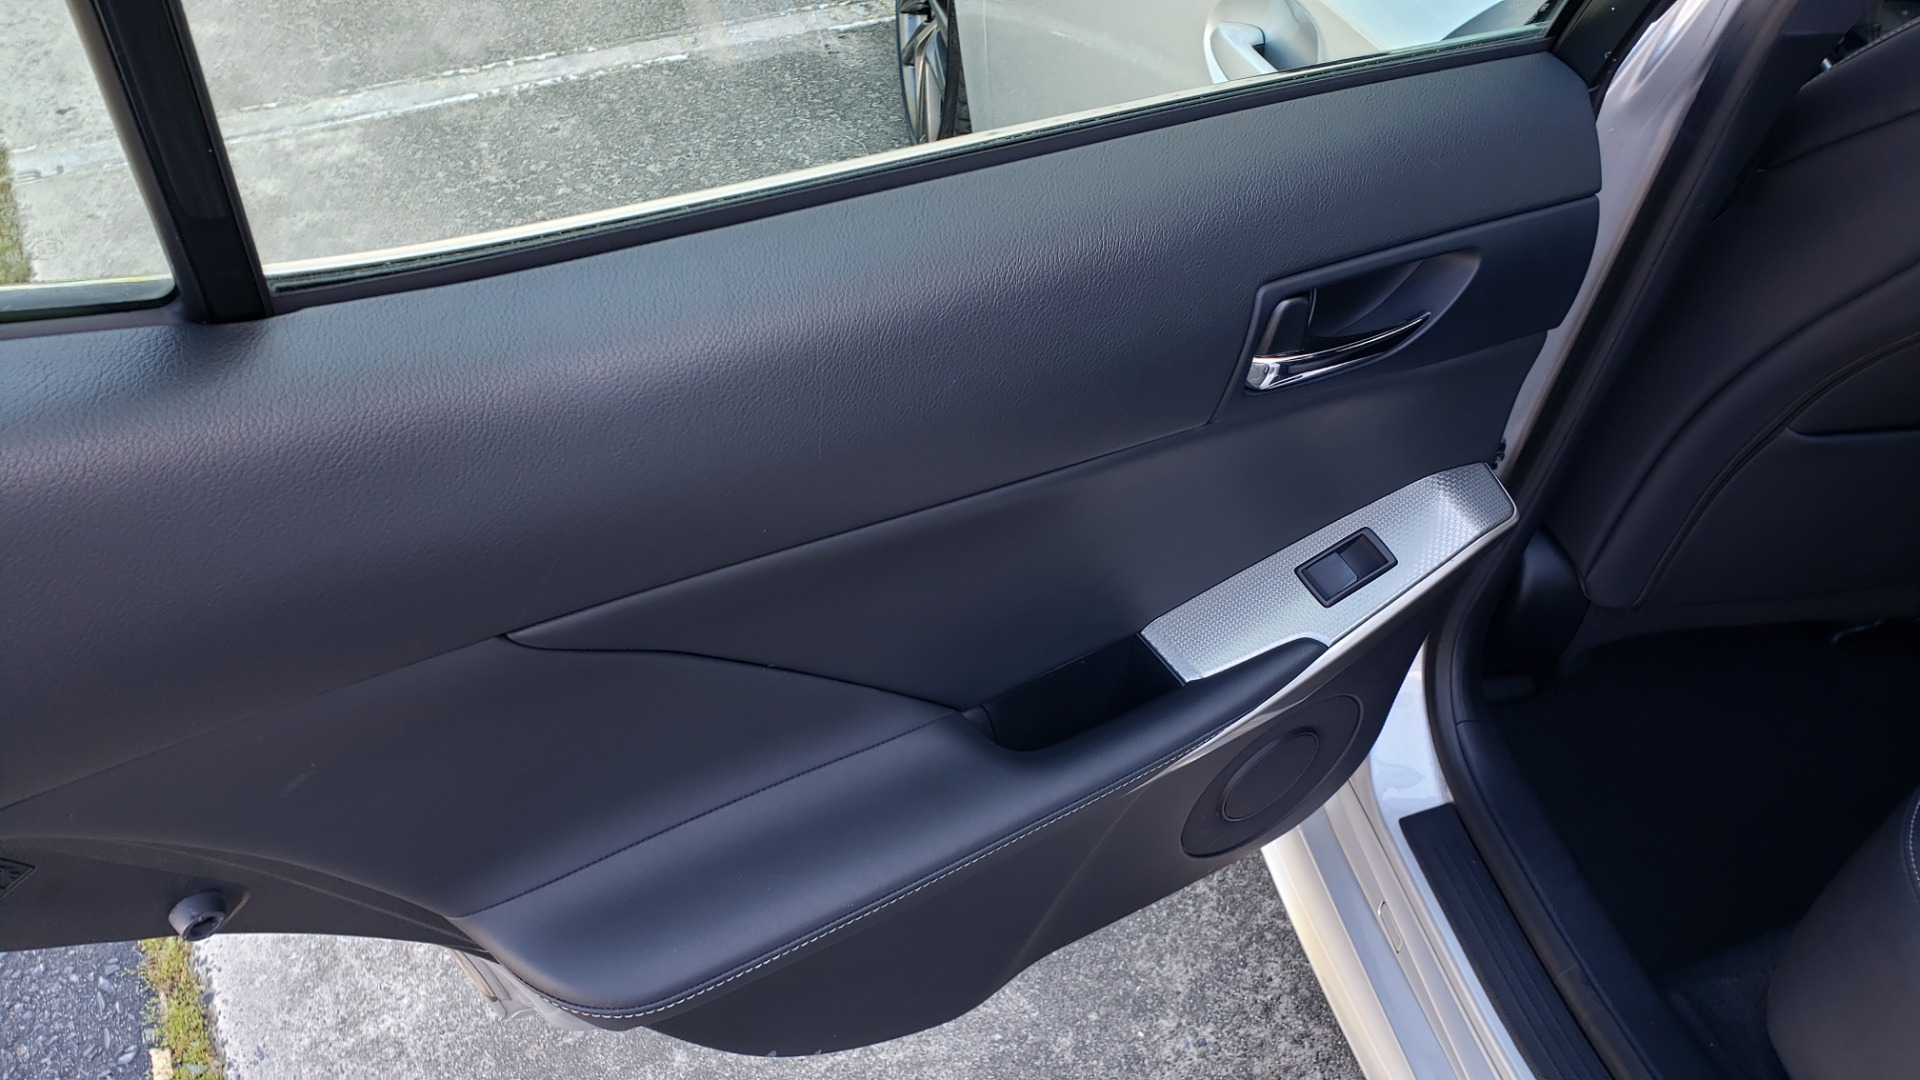 Used 2015 Lexus IS 250 F-SPORT / BSM / SUNROOF / VENT SEATS / REARVIEW for sale Sold at Formula Imports in Charlotte NC 28227 57